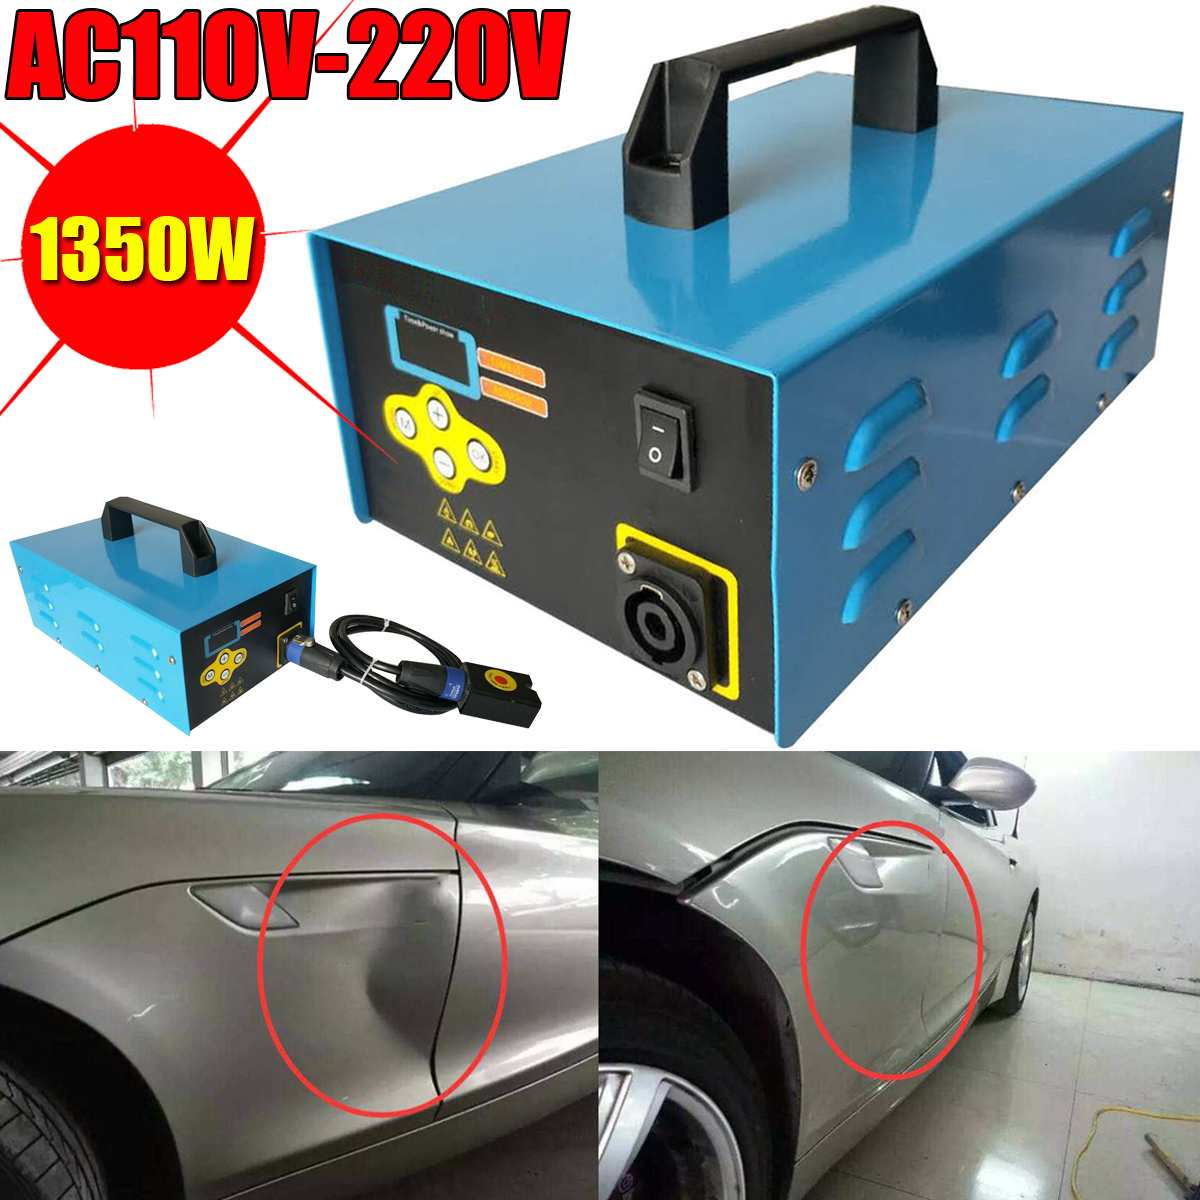 220V/110V 1350W Blue Car Paintless Dent Repair Remover Induction Heater Hot Box Electromagnetic Induction Heater For Repair220V/110V 1350W Blue Car Paintless Dent Repair Remover Induction Heater Hot Box Electromagnetic Induction Heater For Repair